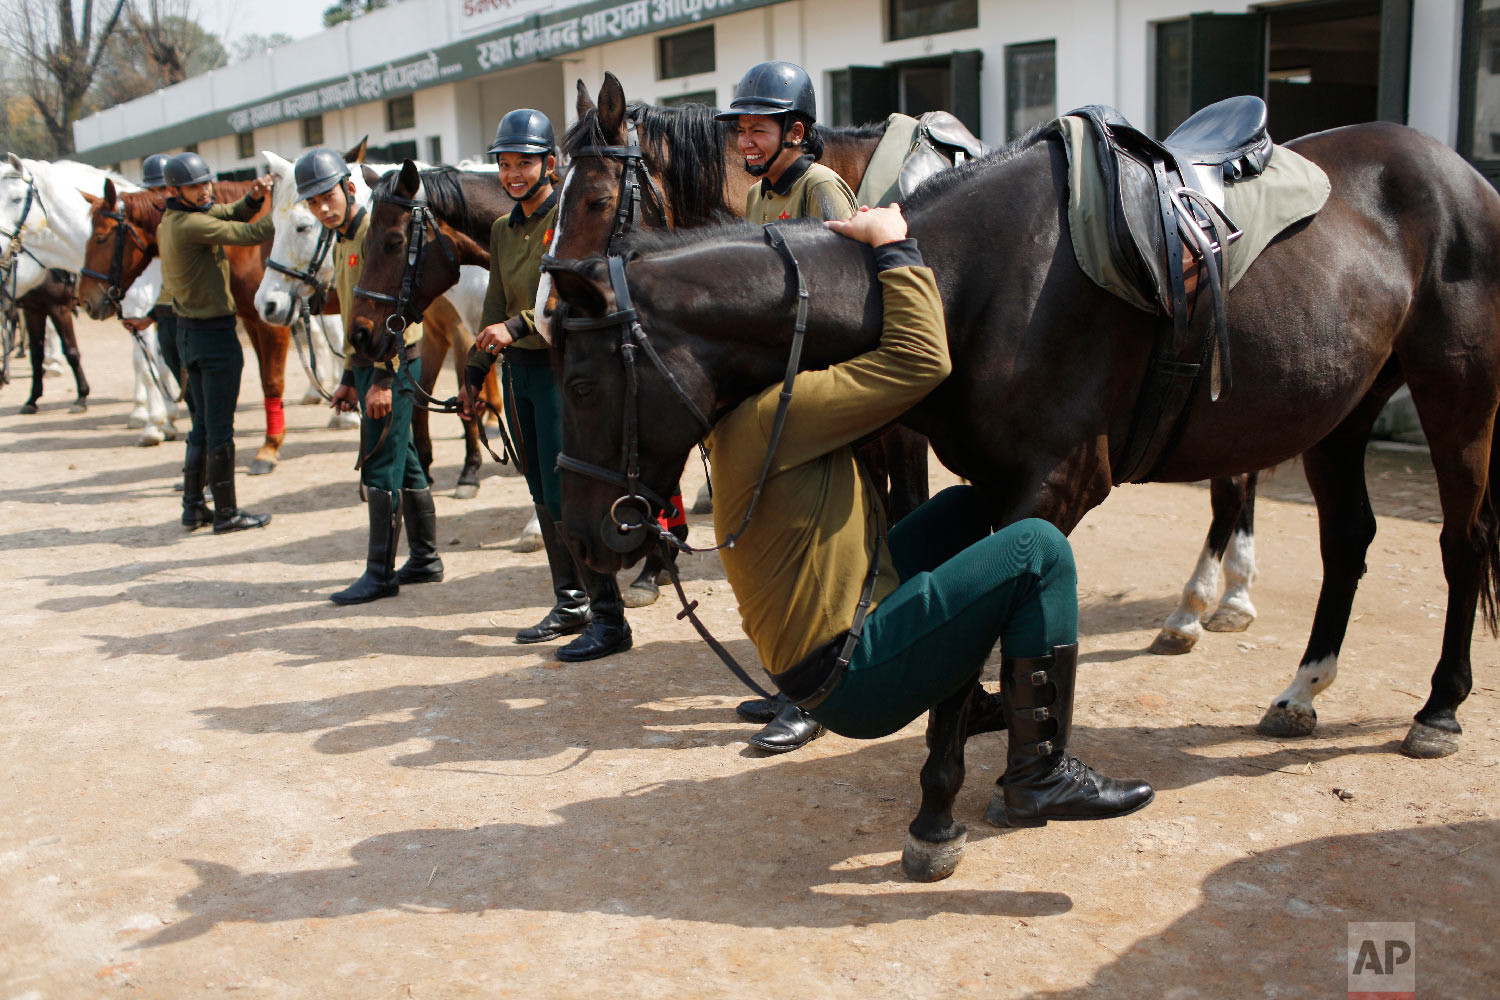 A Nepalese army soldier plays with his horse as others watch before leaving for rehearsals for Ghode Jatra festival on March 19, 2019, in Kathmandu, Nepal. (AP Photo/Niranjan Shrestha)